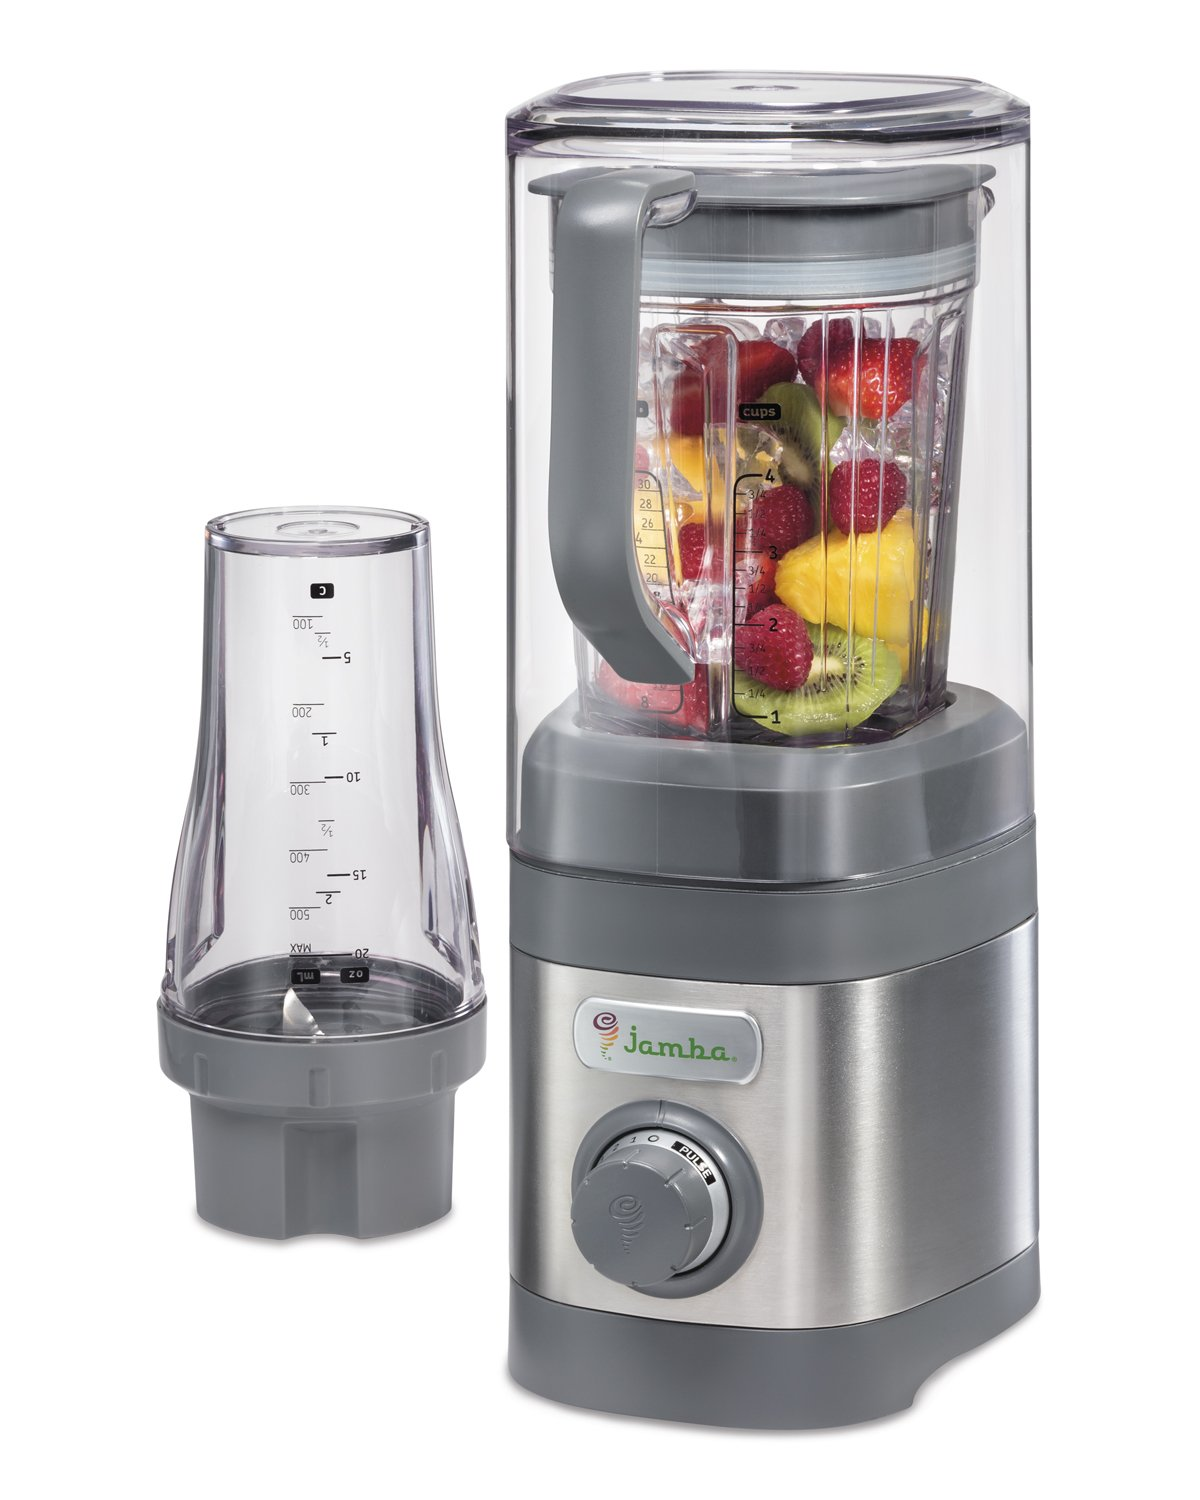 Top 10 Best Blender for Smoothies with Ice - Buyer's Guide 7